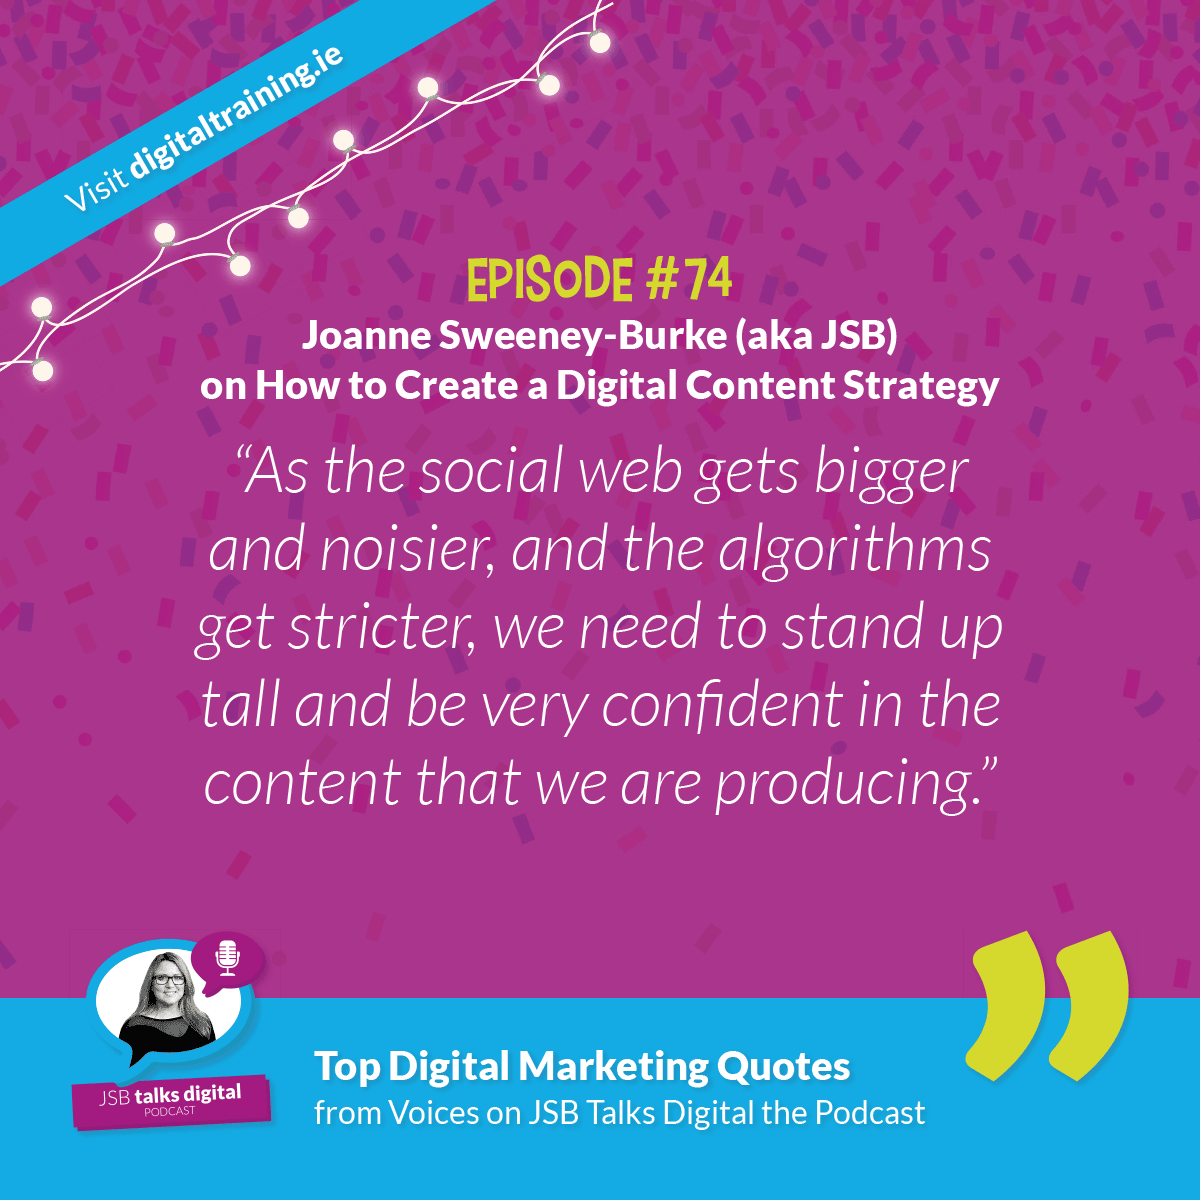 JSB Digital Content Strategy Quote